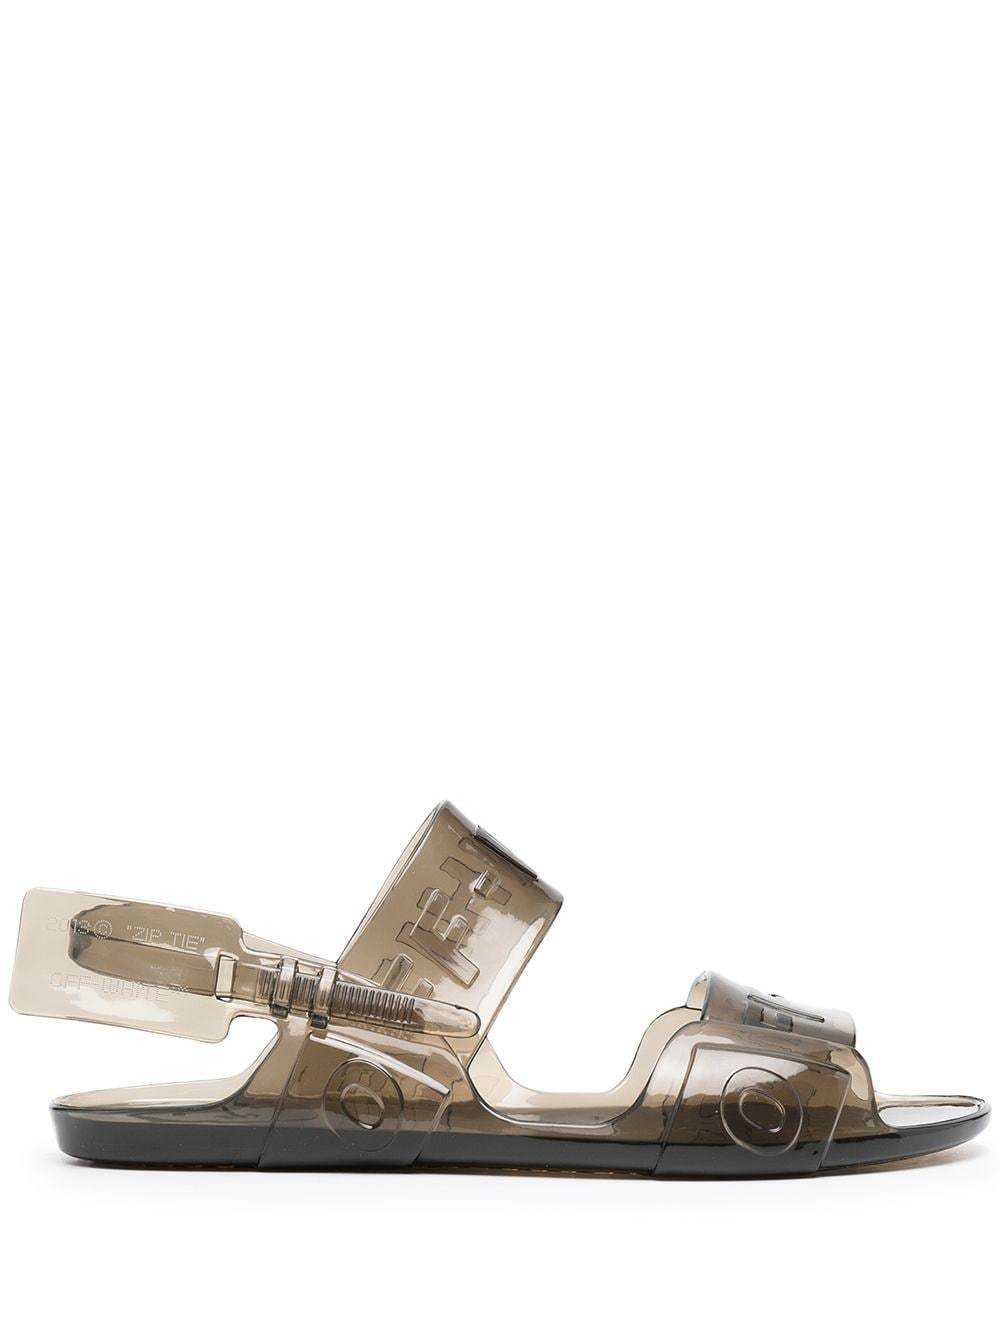 Off-White Women's Jelly Sandal Grey - Maison De Fashion